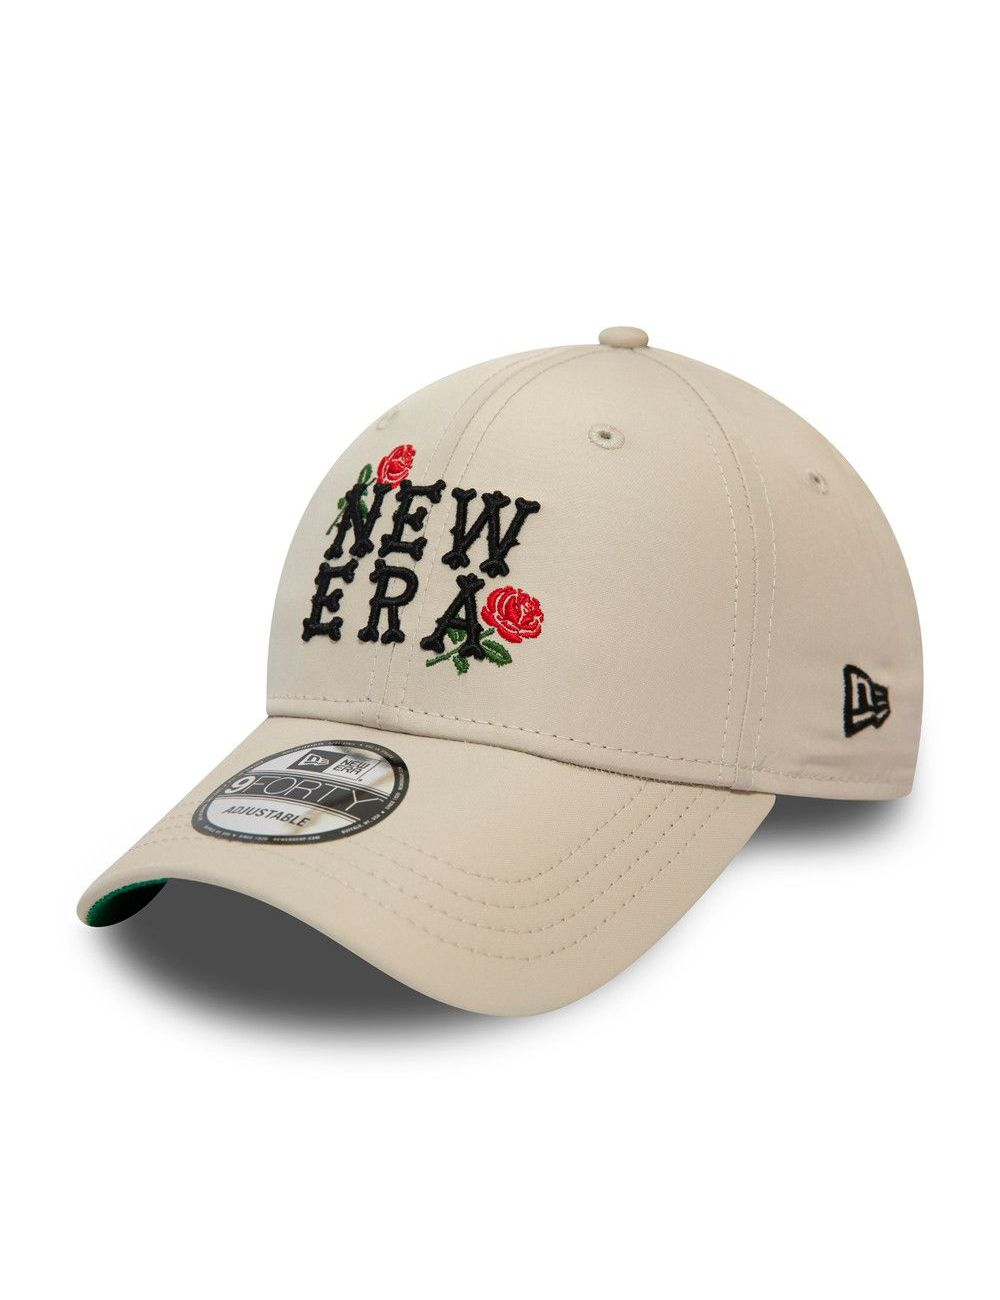 Casquette New Era 9FORTY Script and Roses beige 12380860